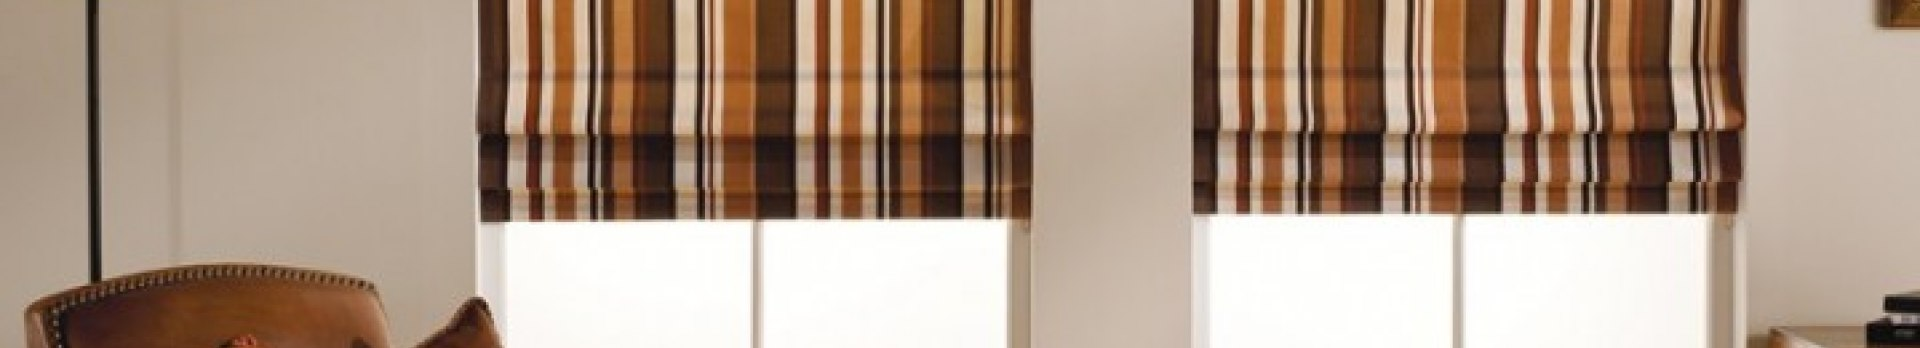 Buying the roman blinds in Dubai offer the curtains at cost-effective prices